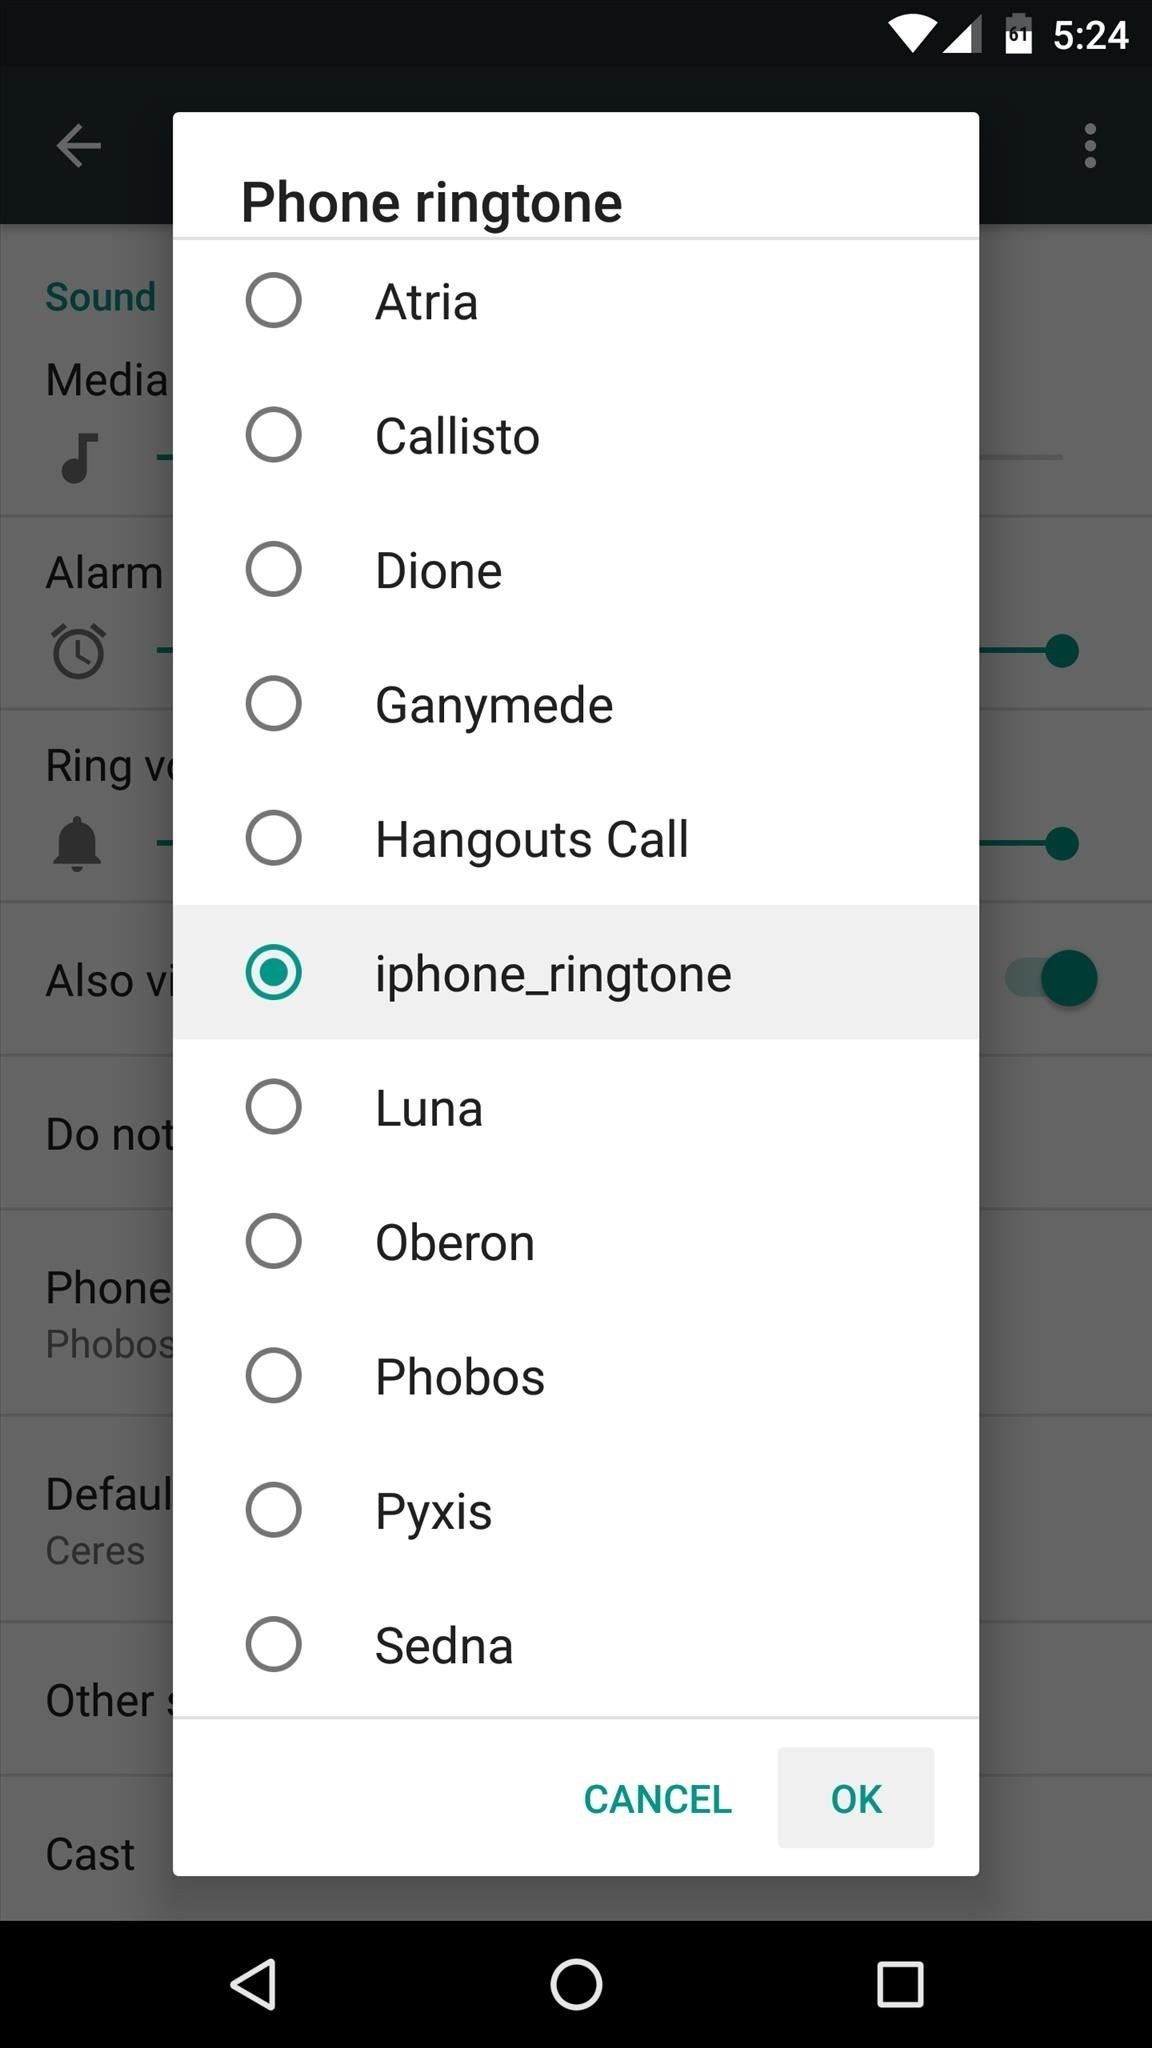 Android Basics: How to Add Your Own Ringtones & Notification Sounds